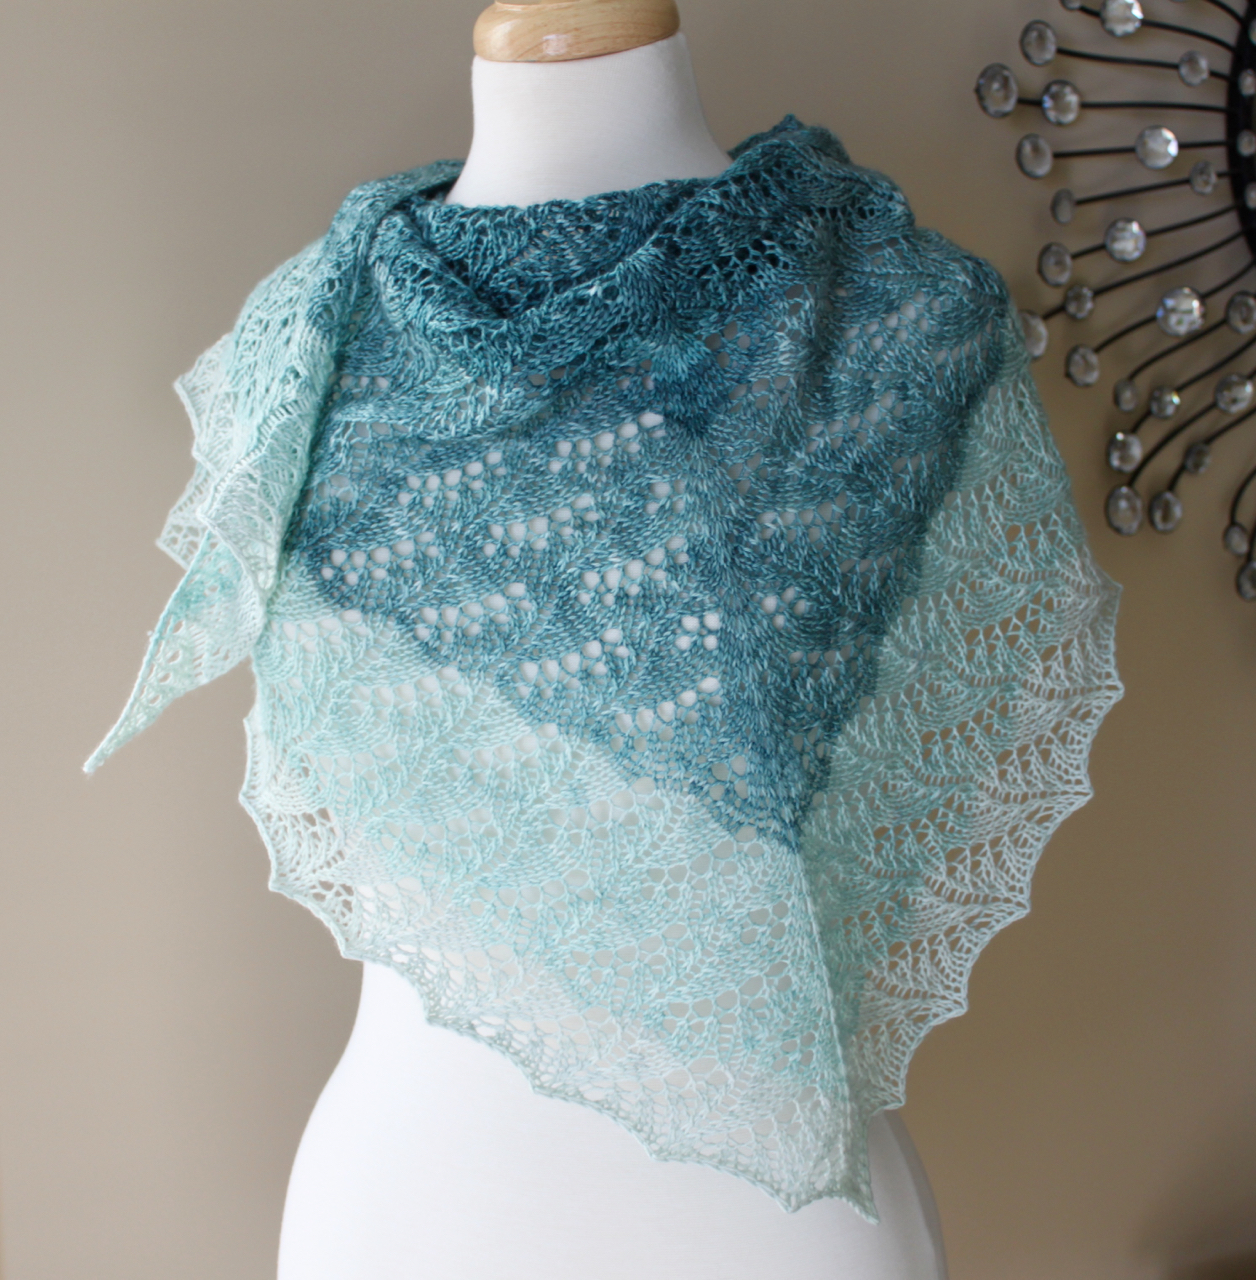 23 2017 at 1256 215 1280 in introducing the cloudy skies shawl